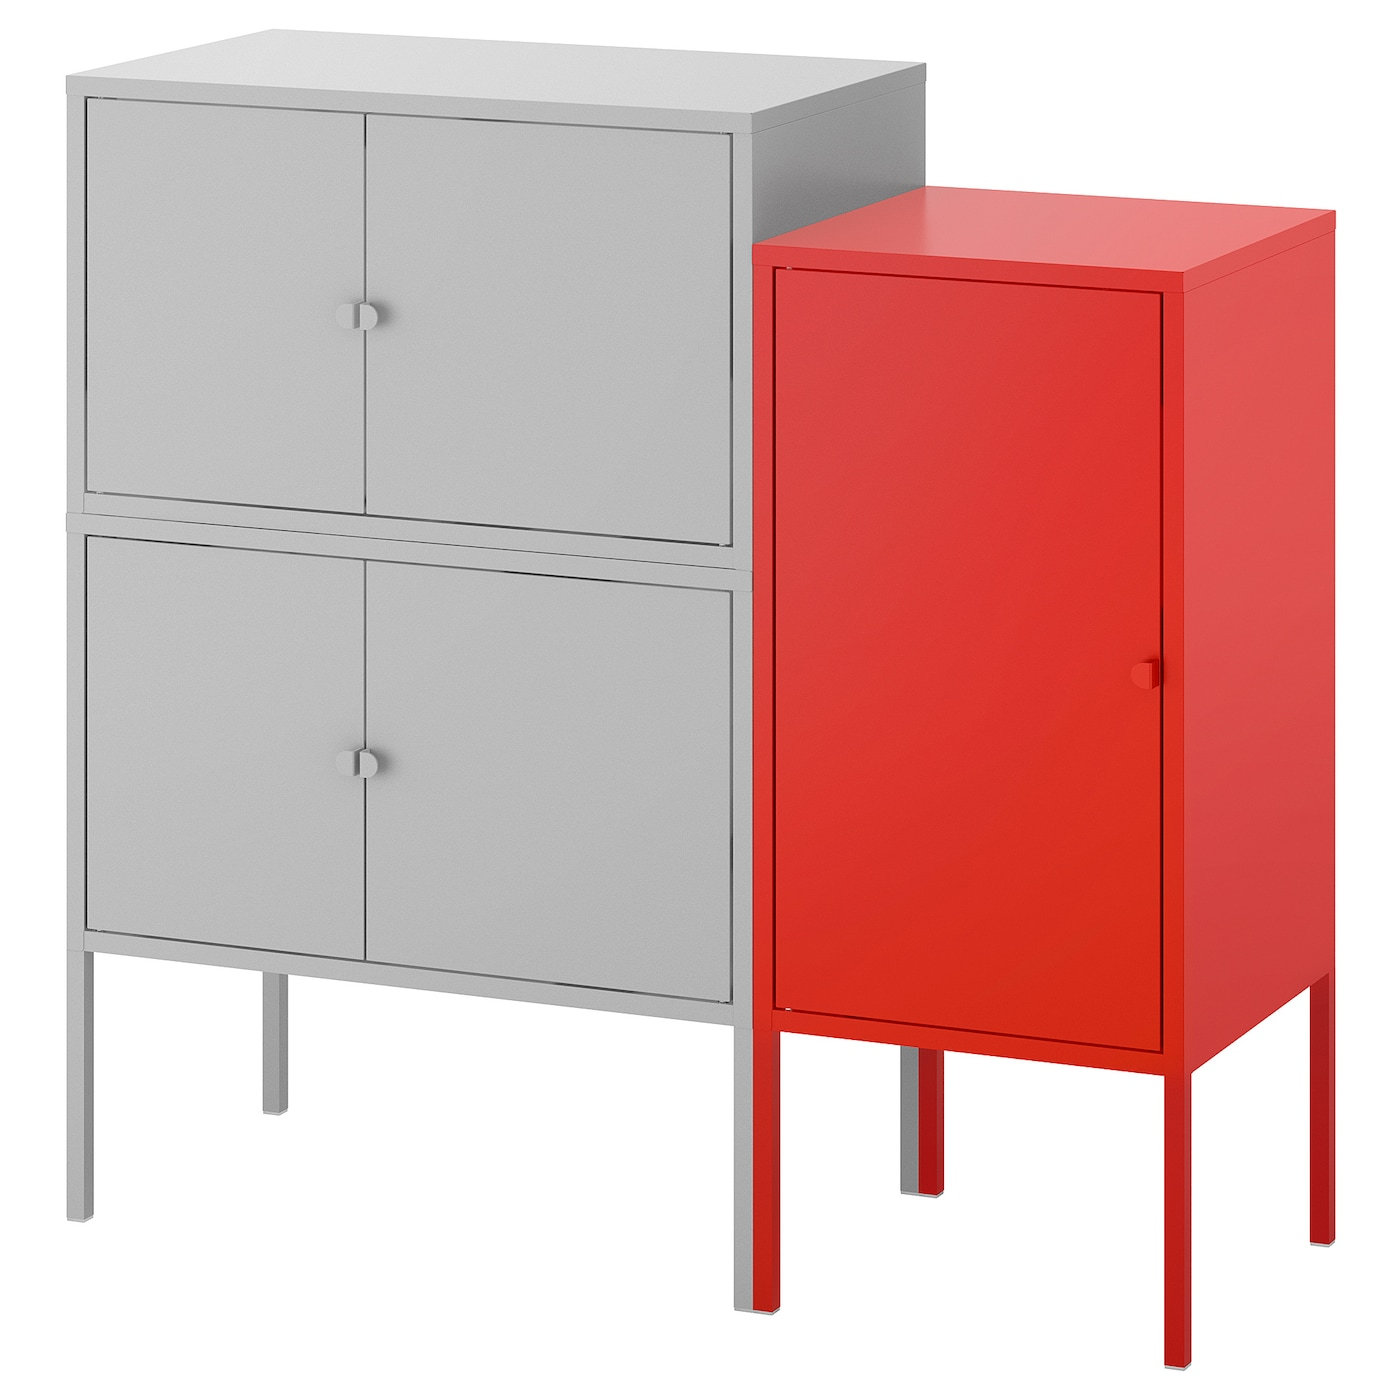 lixhult combinaison rangement gris rouge 95 x 35 x 92 cm ikea. Black Bedroom Furniture Sets. Home Design Ideas